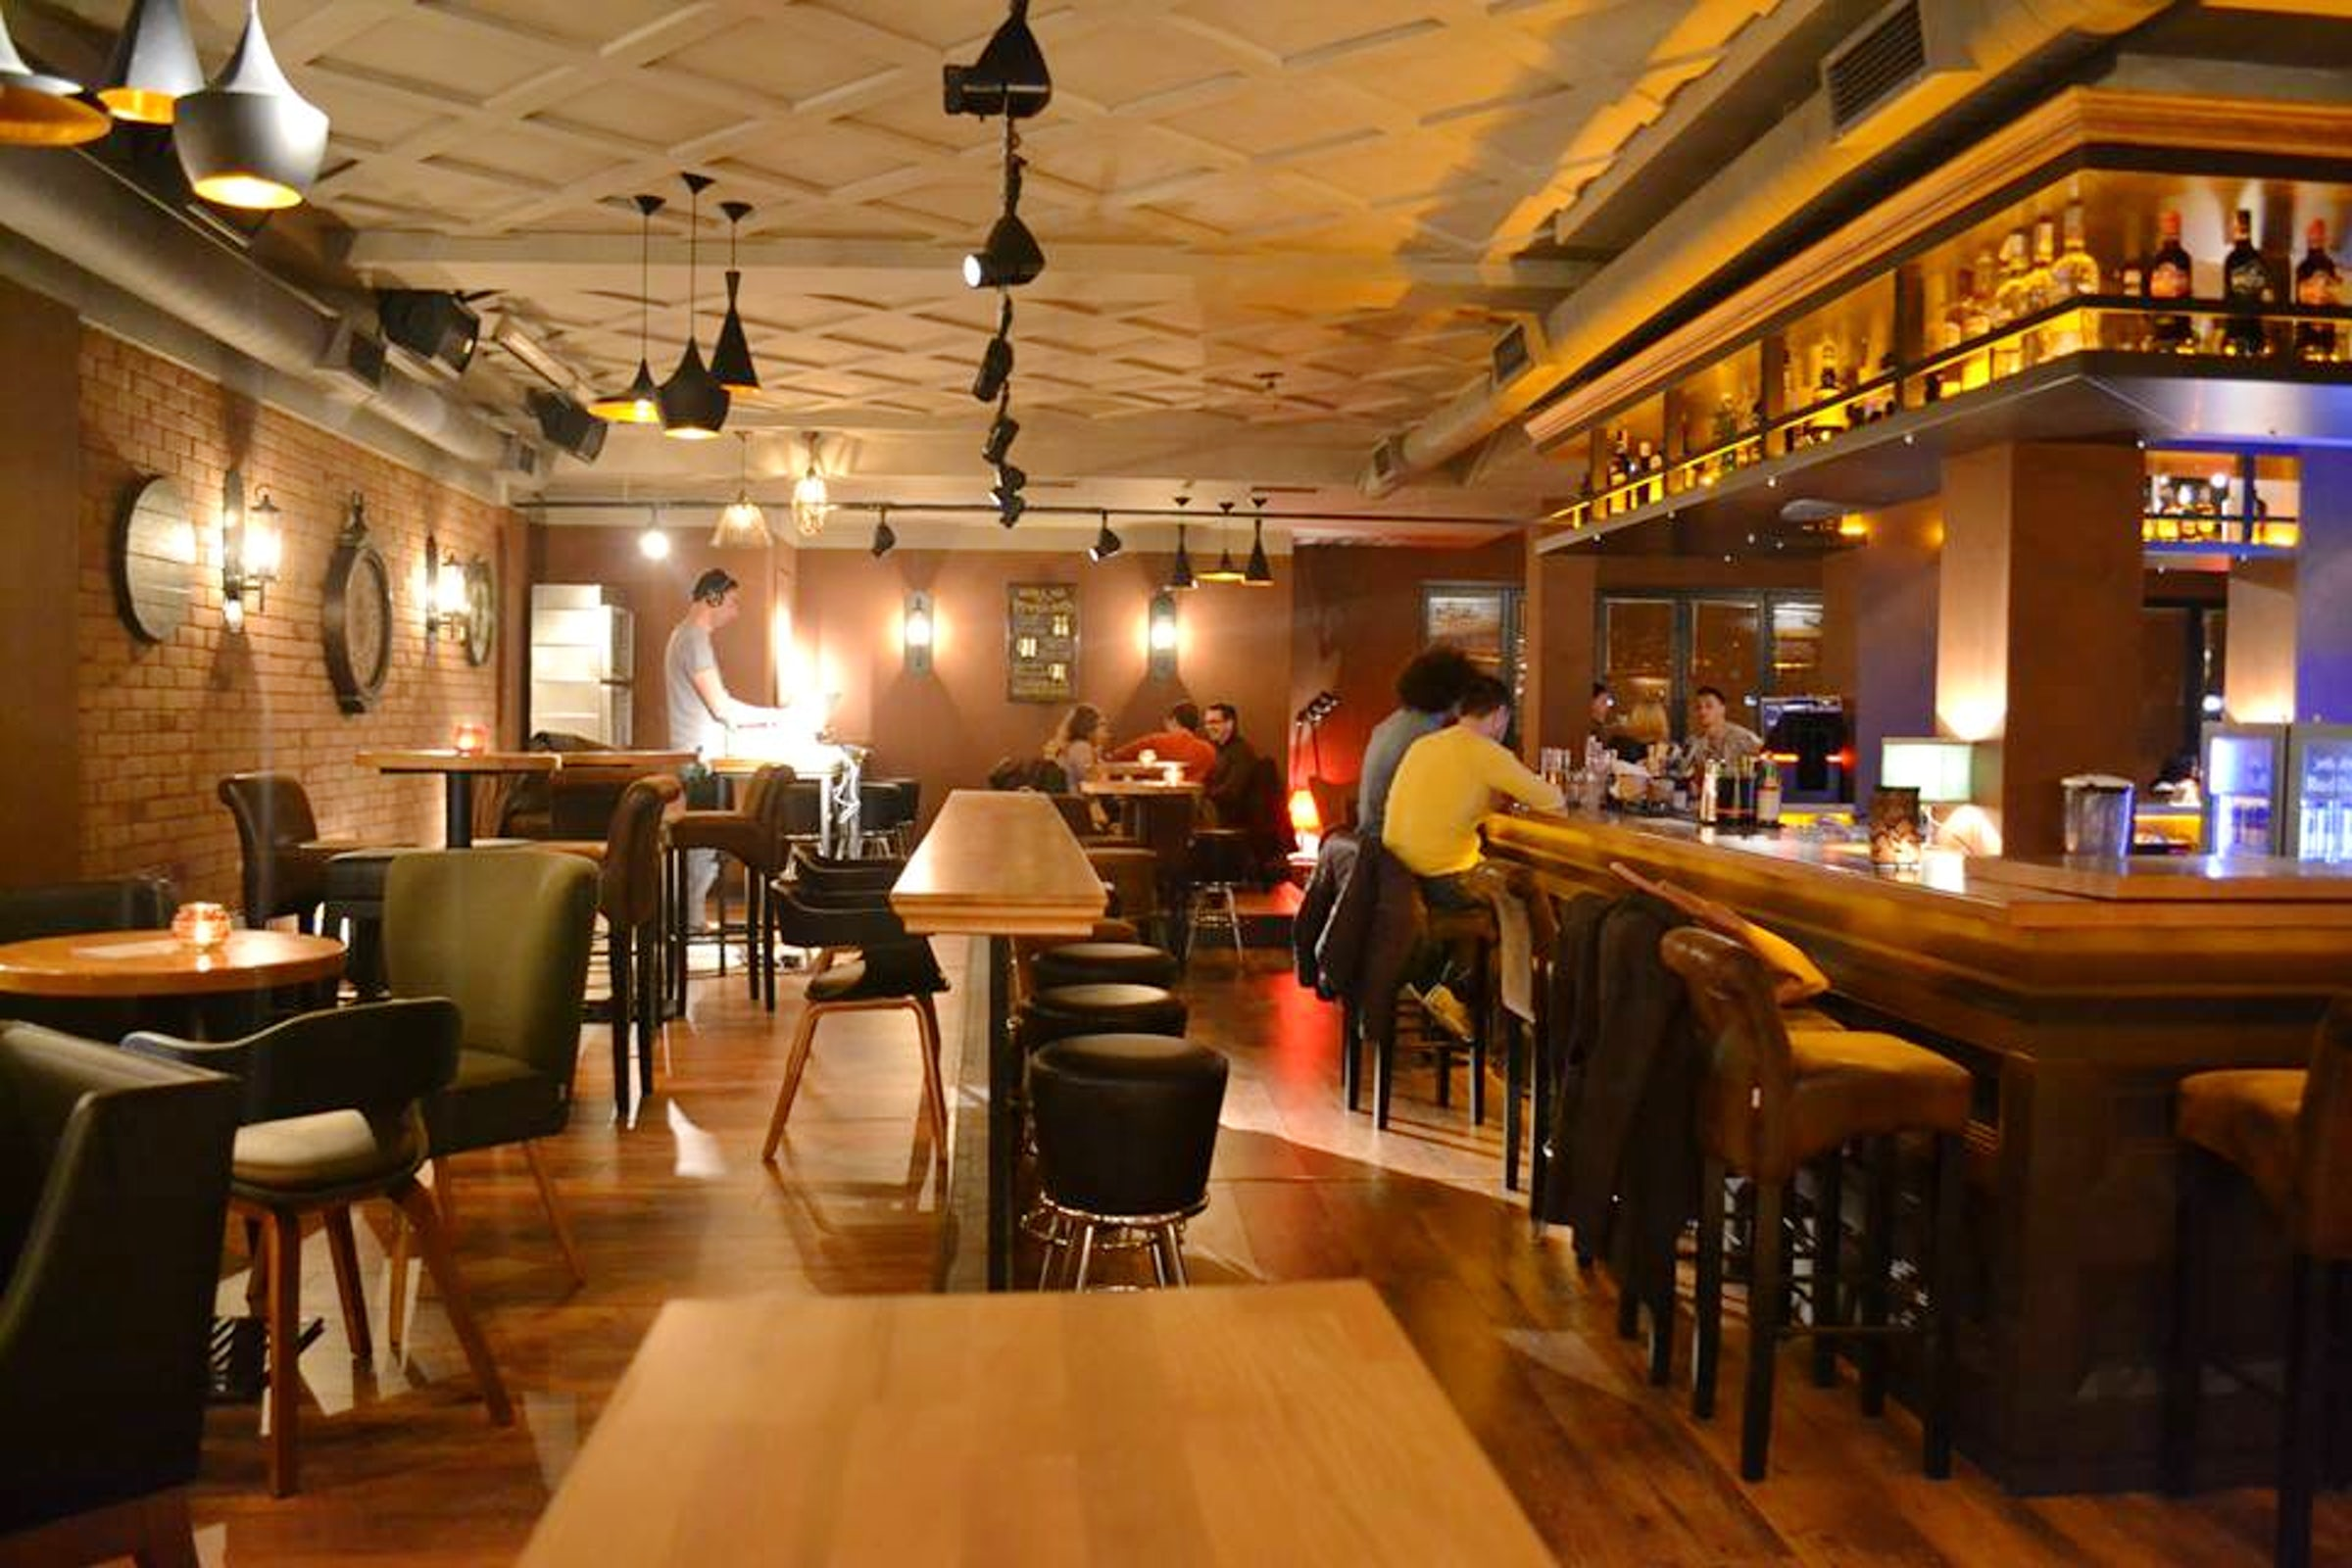 Best Bars In Town Series | Charl's Bistro